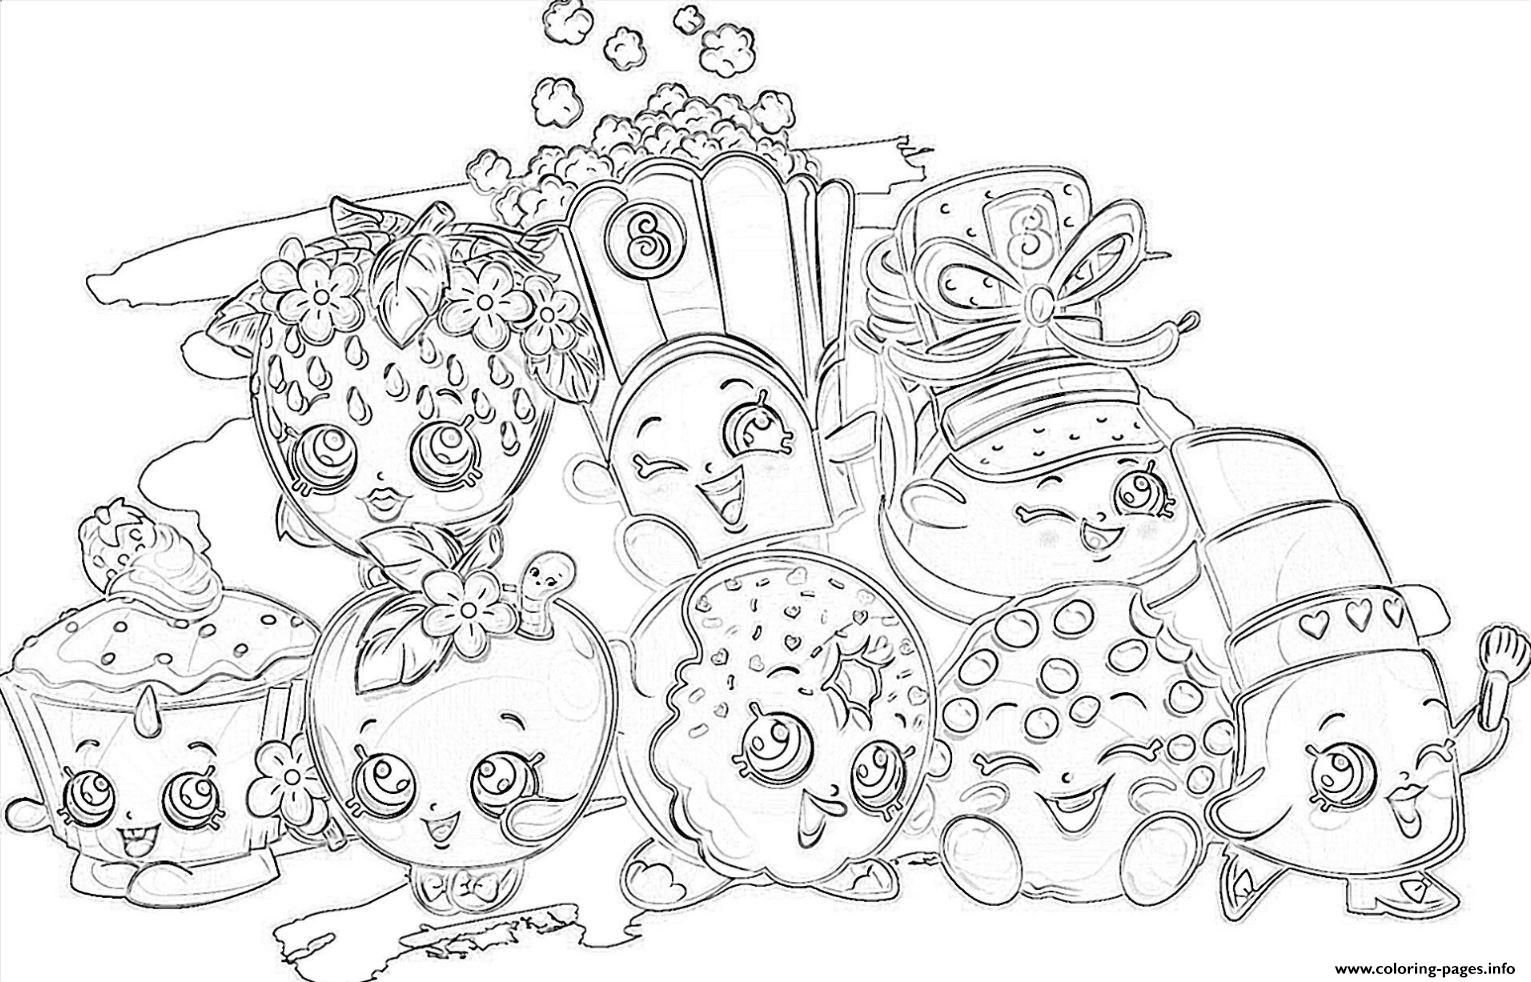 Print shopkins all the family coloring pages | Family ...